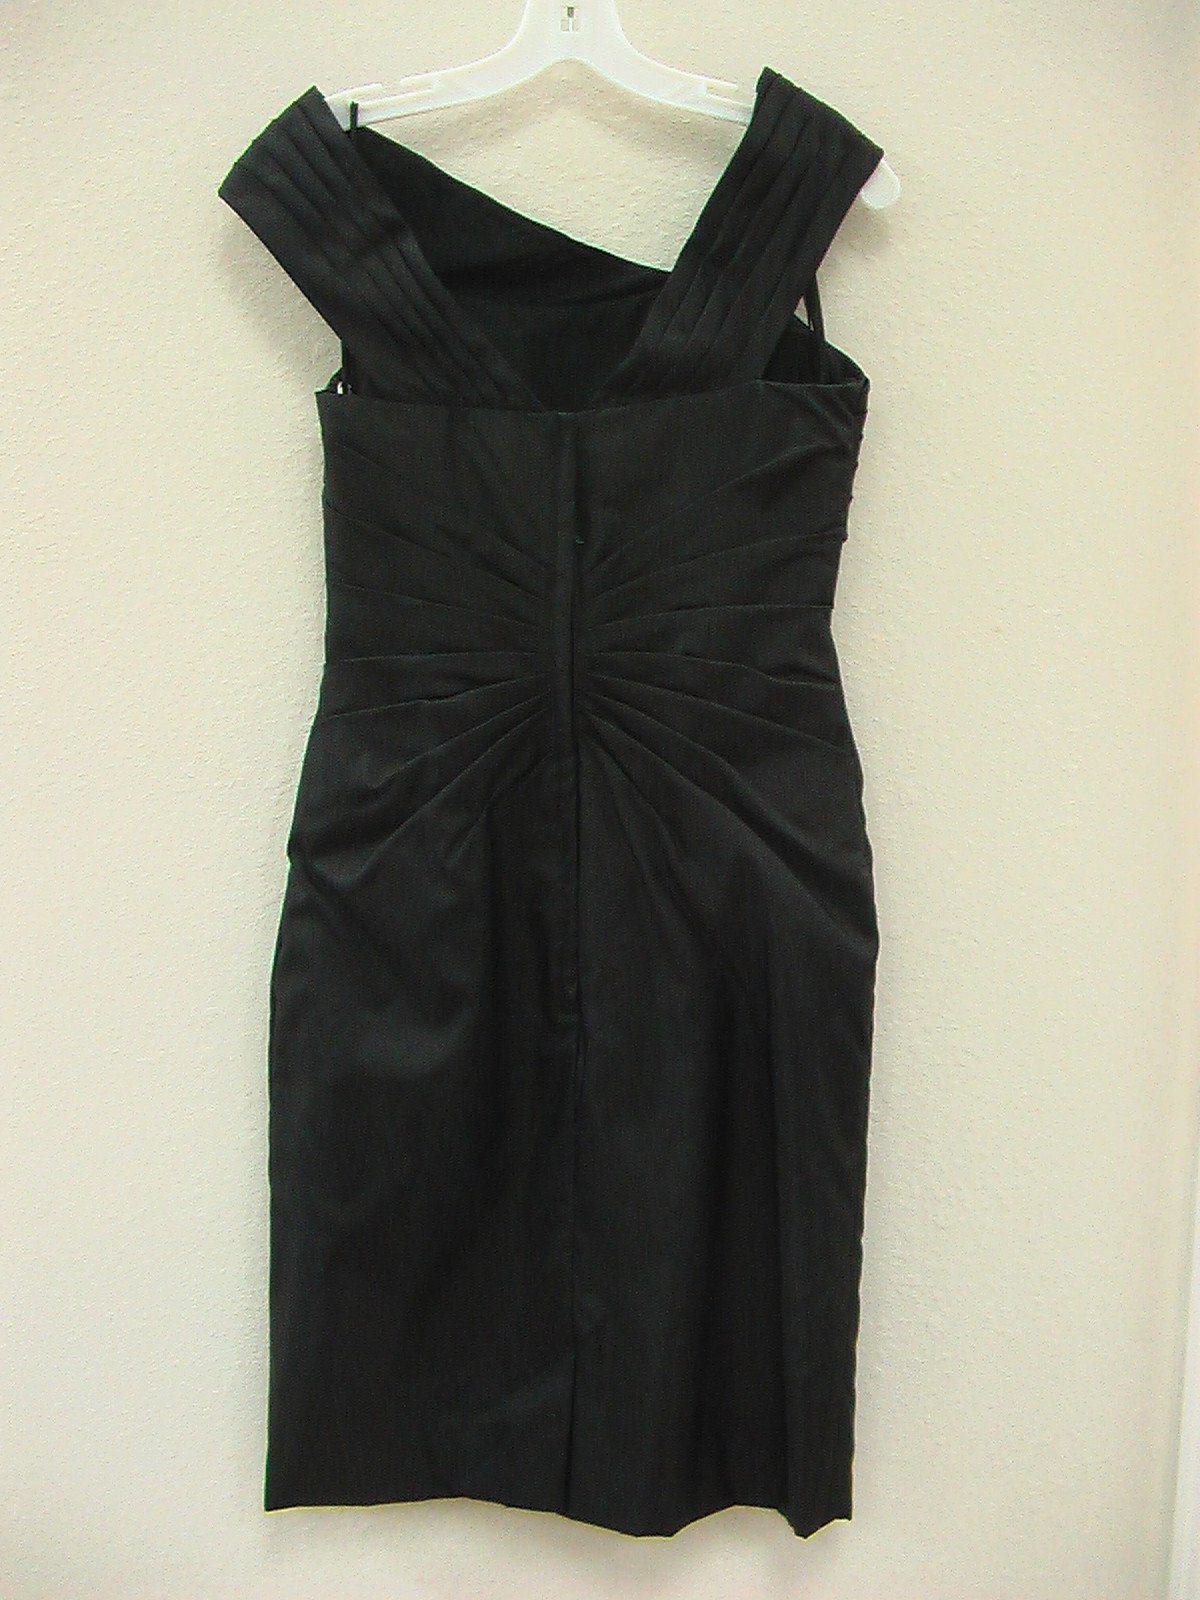 Mori Lee 891 Black size 8 In Stock Bridesmaid Dress - Tom's Bridal